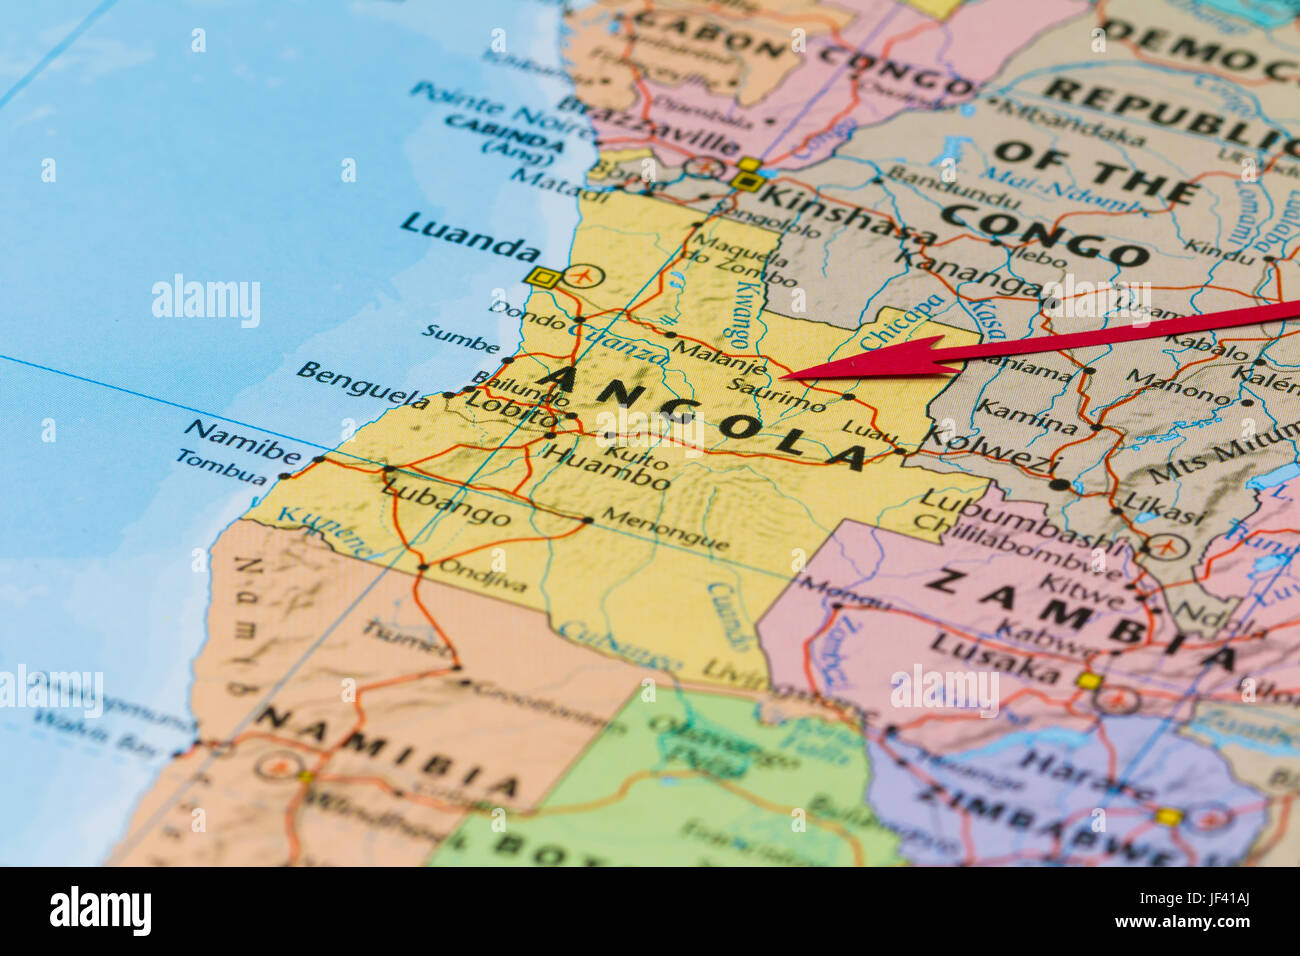 Photo of Angola. Country indicated by red arrow. Country on African continent. - Stock Image